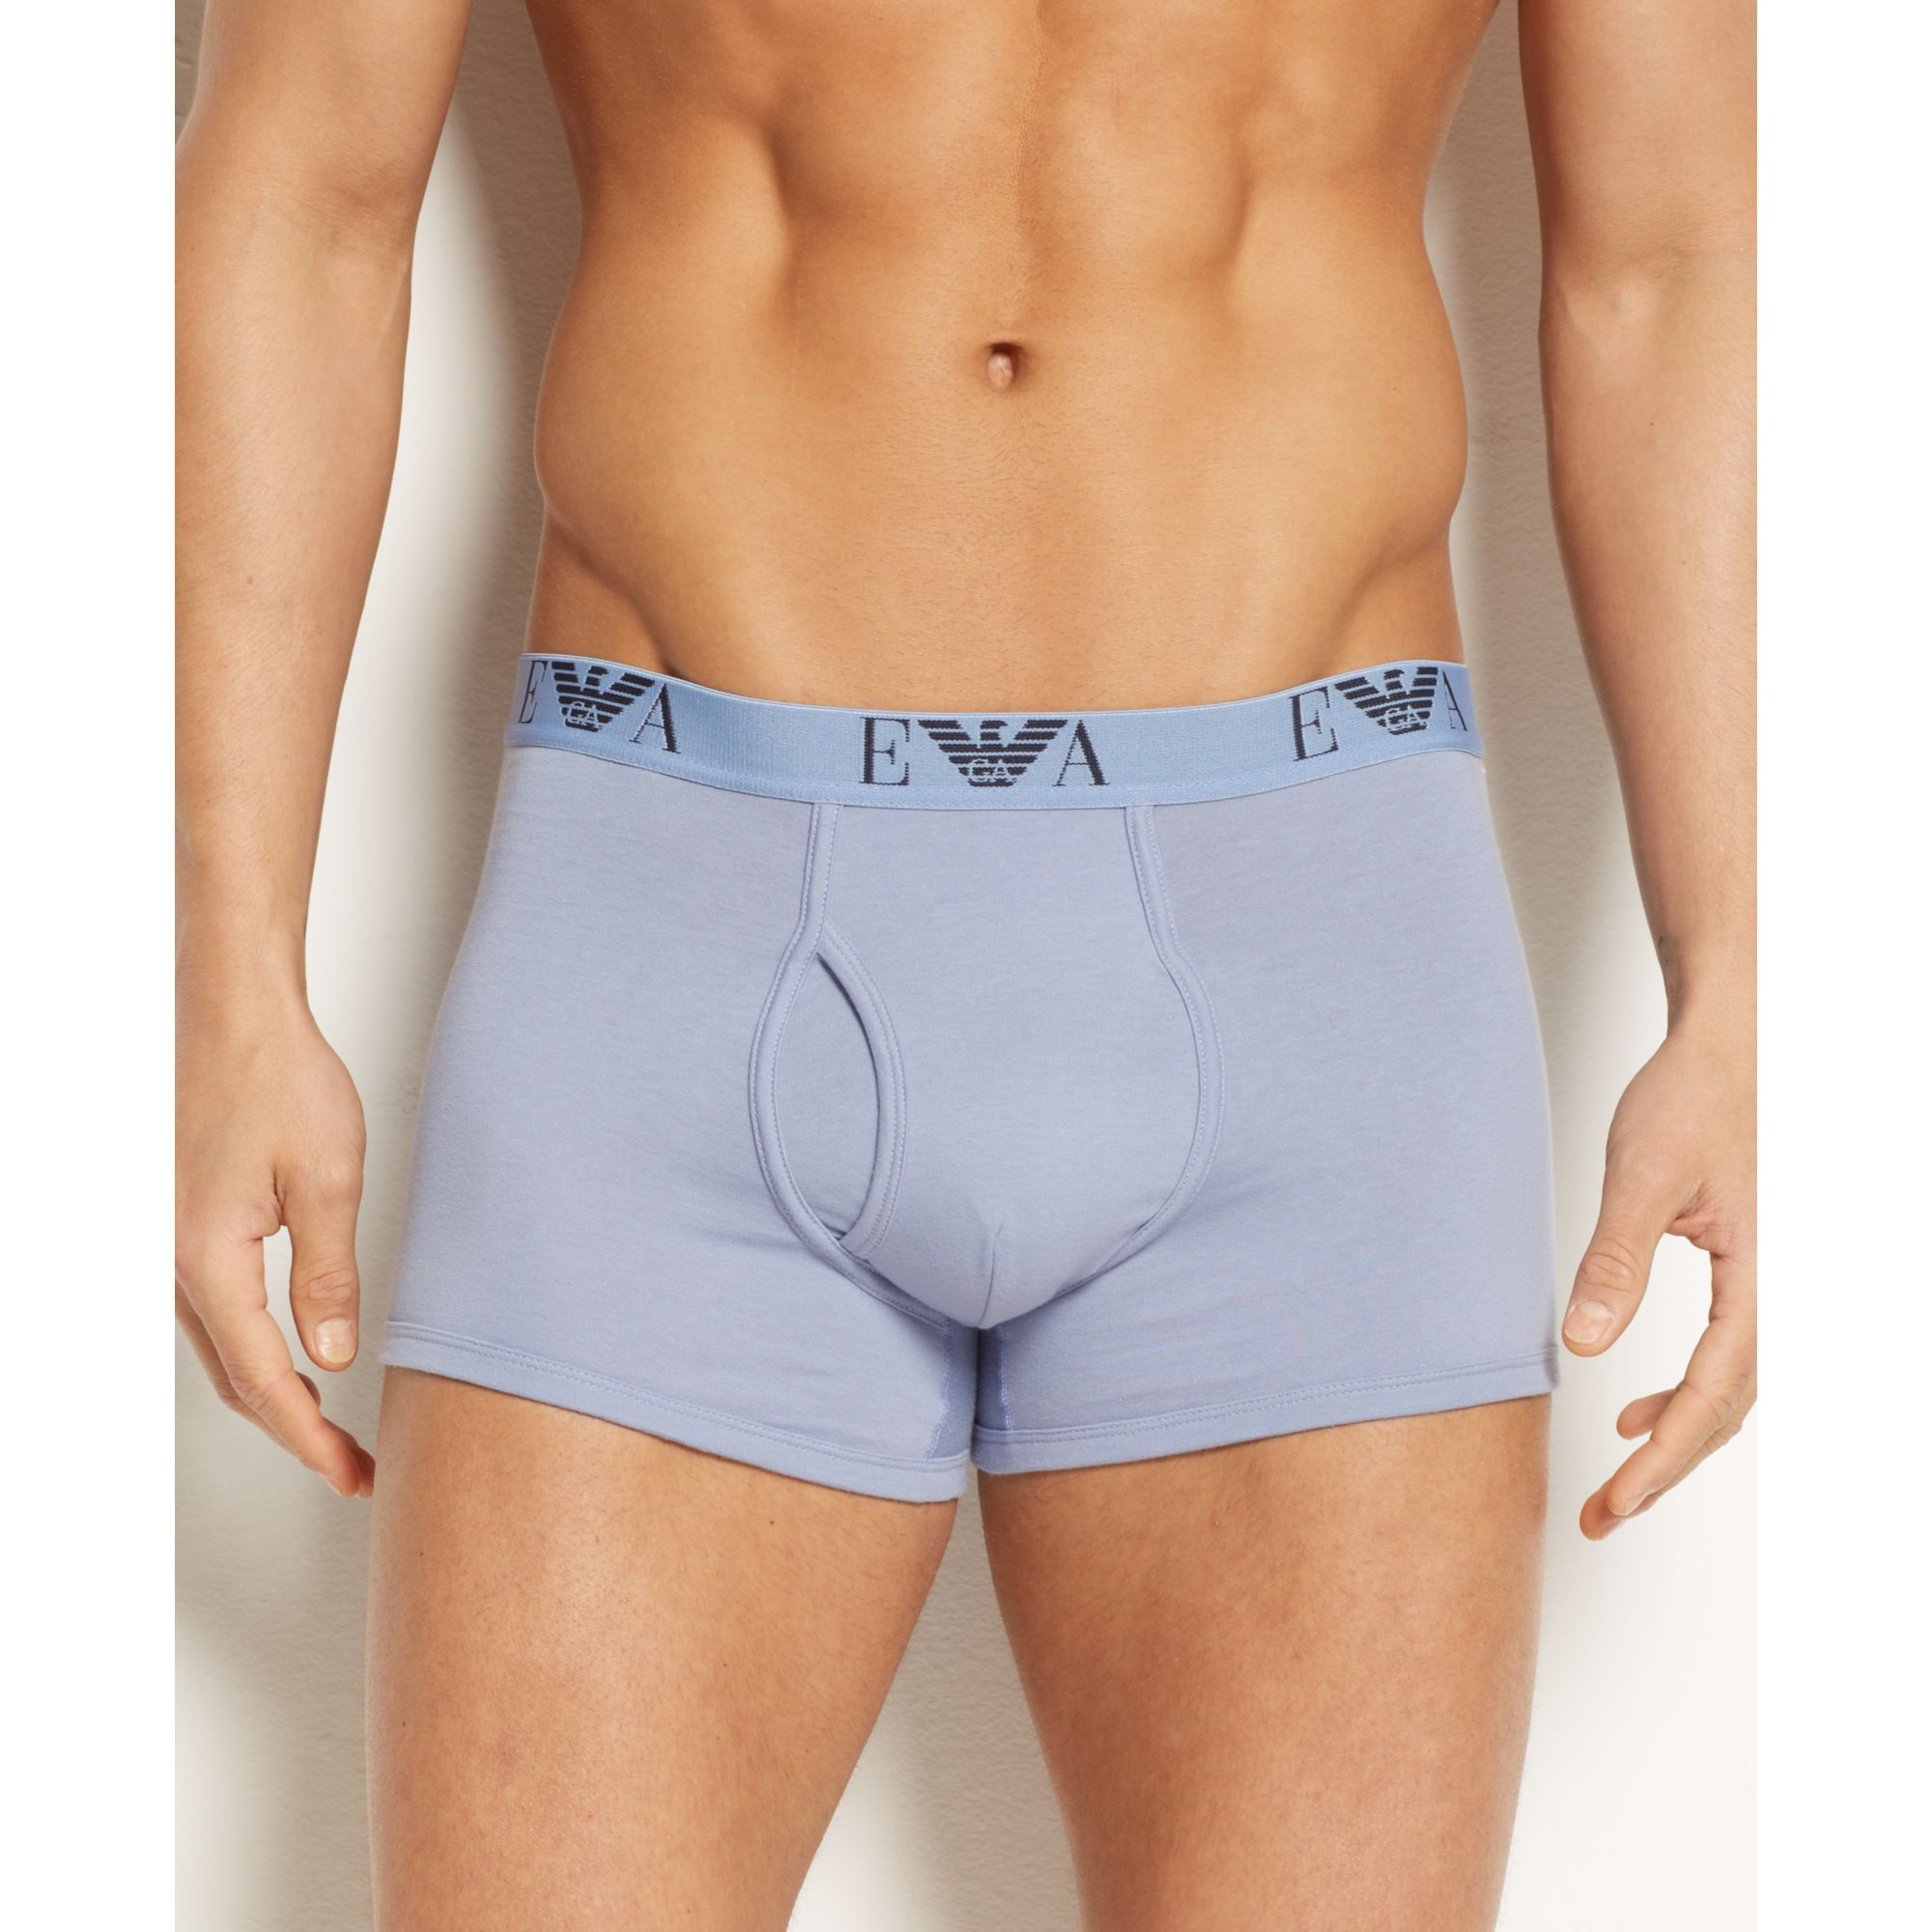 Lyst - Emporio Armani Mens Jersey Cotton Boxer Brief 3 Pack in Blue ... d1f282a3217